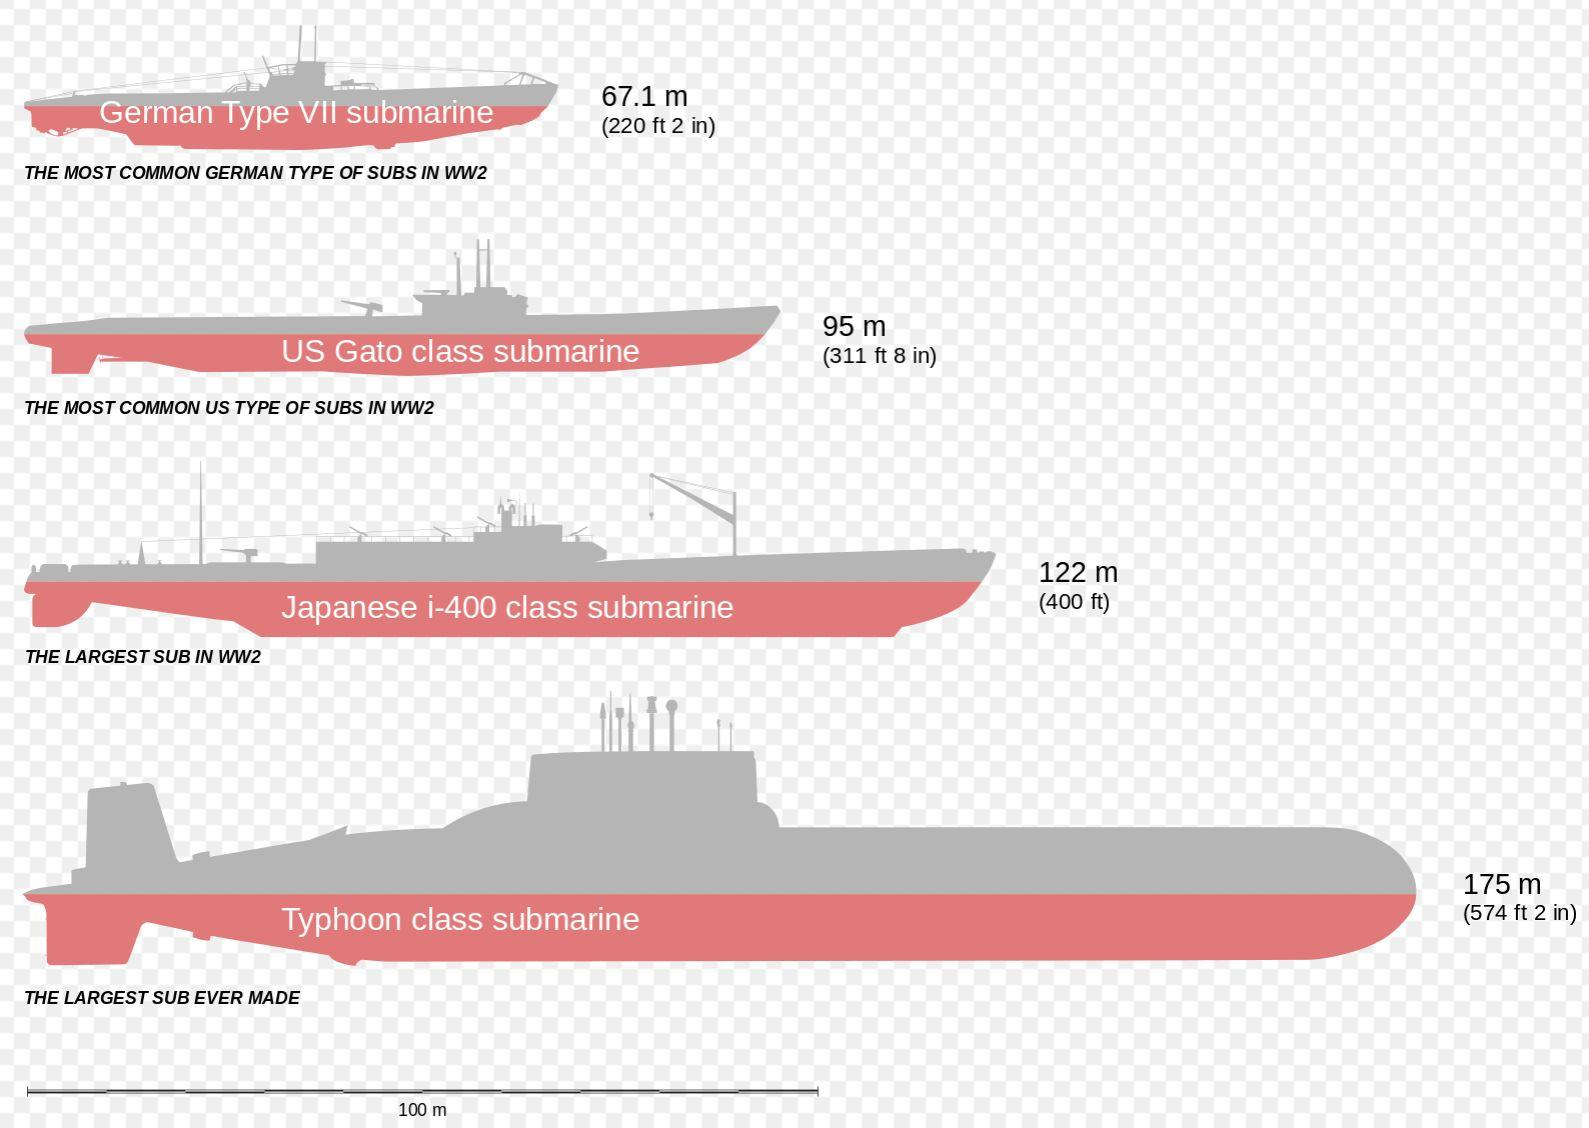 hight resolution of comparison of german type vii u boats us gato class japanese i 400 class and typhoon class